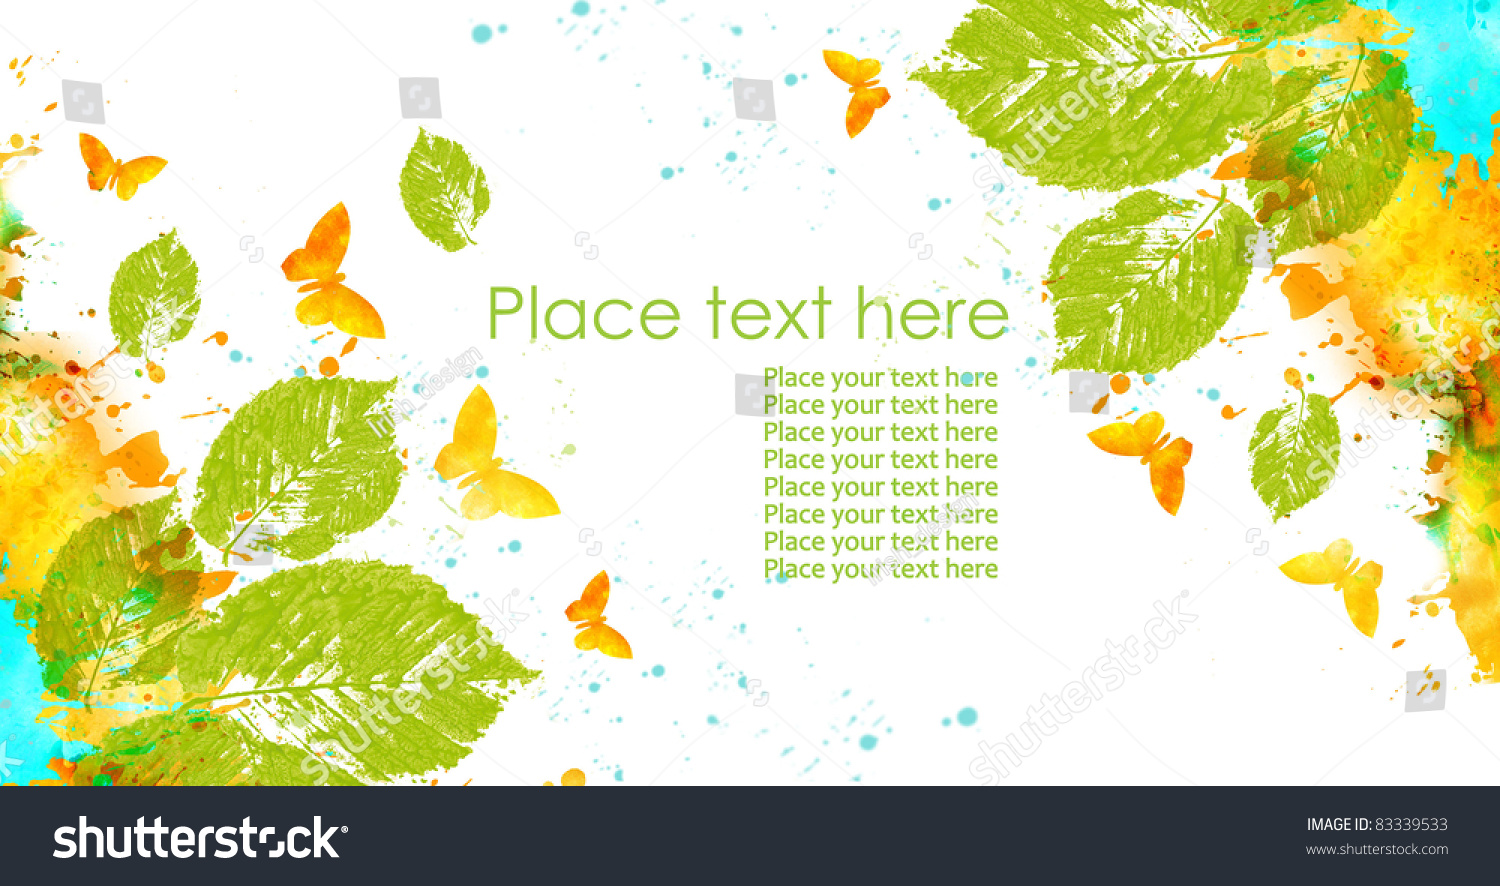 Nature Design Leaves Butterflies Abstract Spots Stock Illustration ...